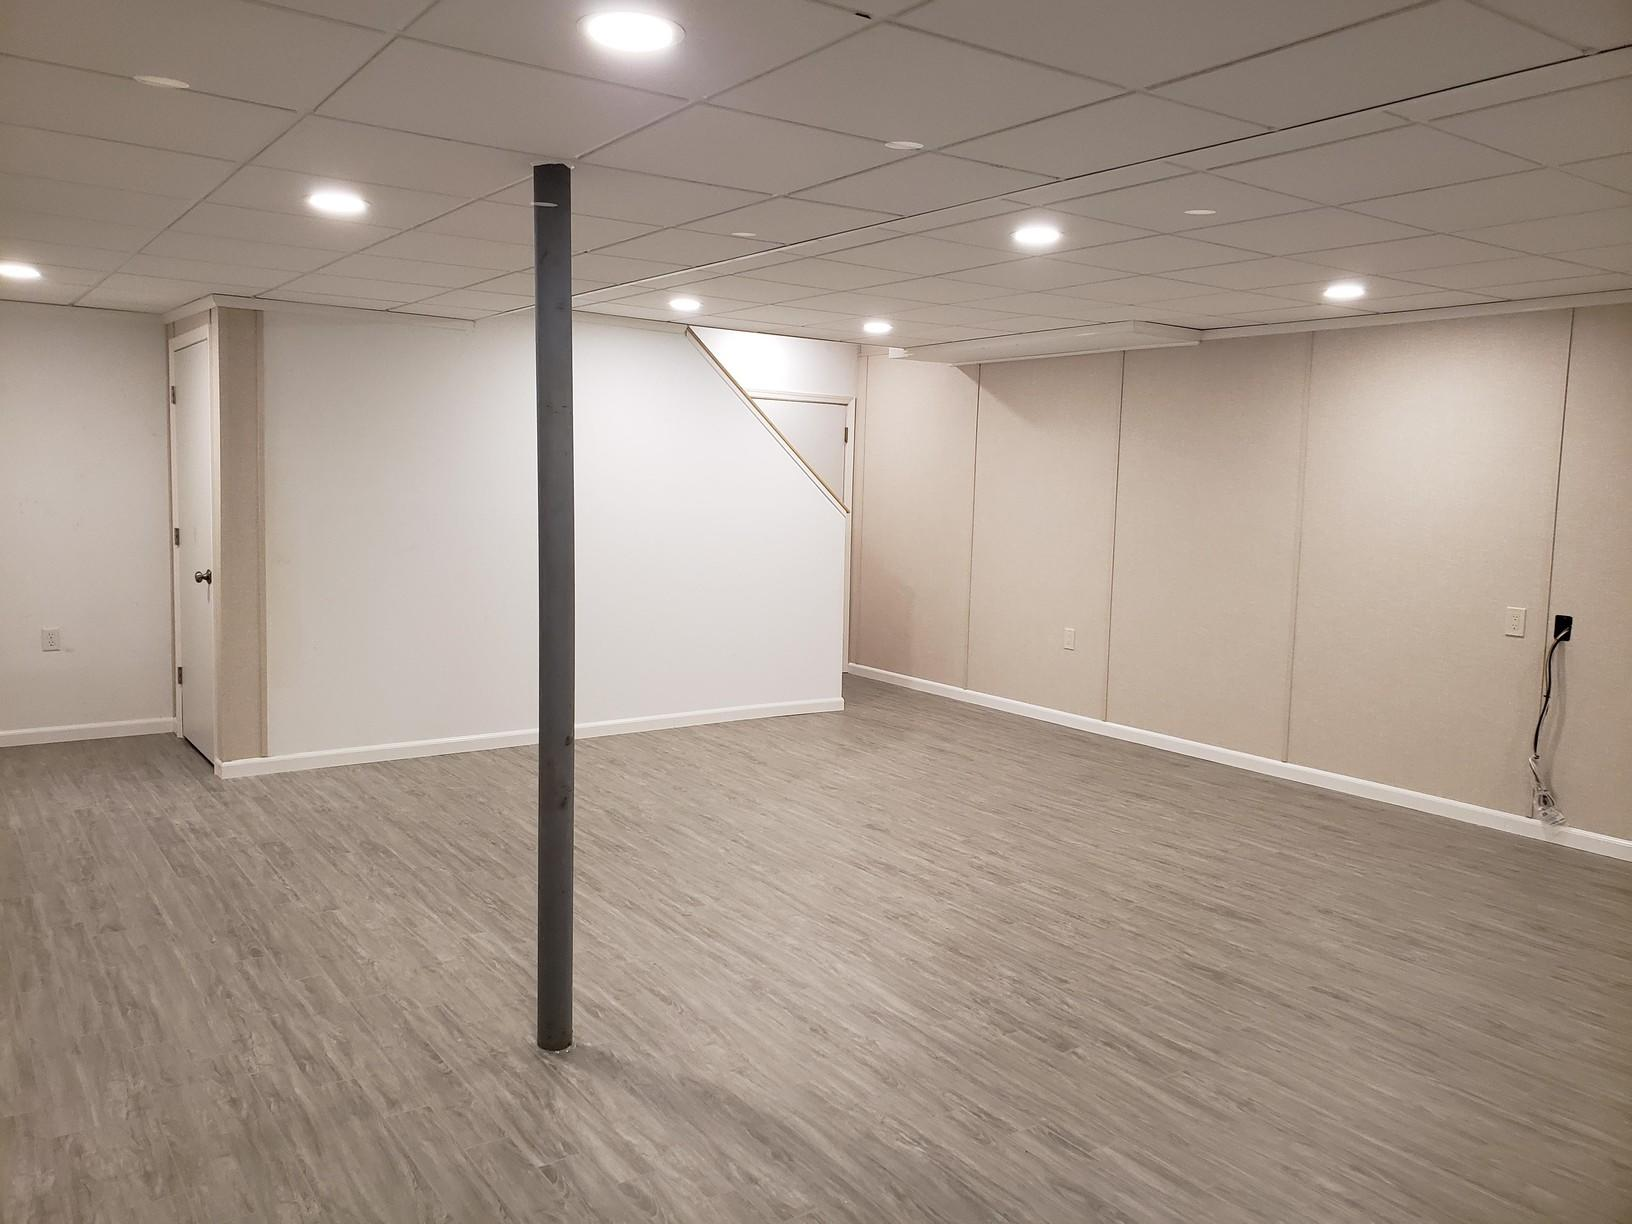 Basement Transformed into Playroom in Venetia, PA! - After Photo